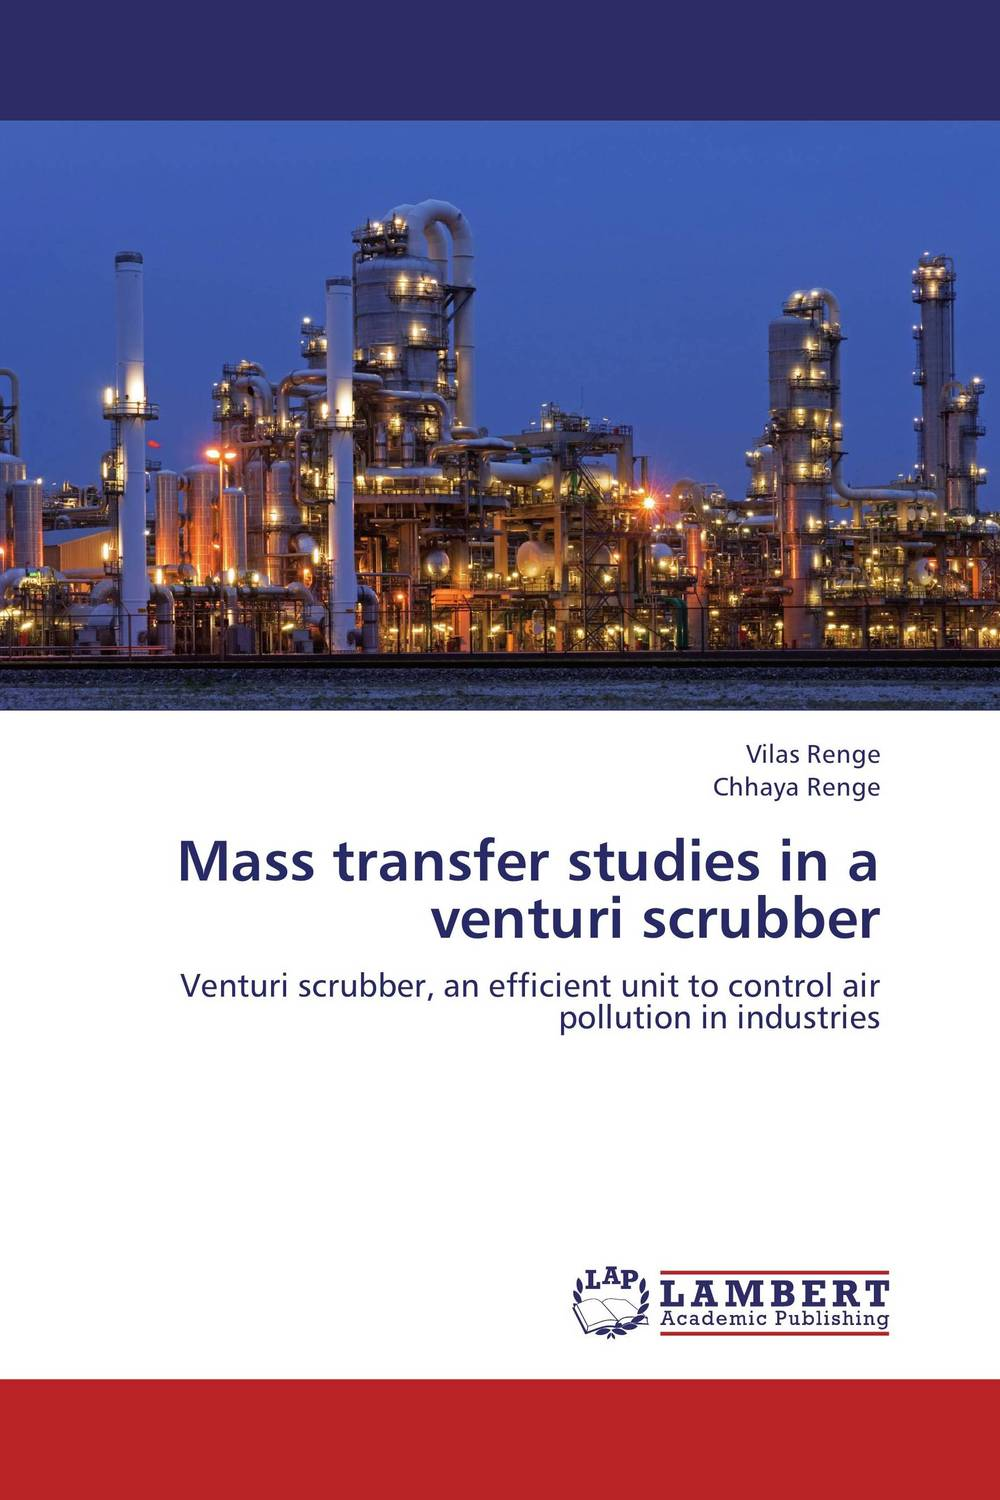 Mass transfer studies in a venturi scrubber the valves are self acting i e they operate without the supply of auxiliary energy such as electricity or compressed air